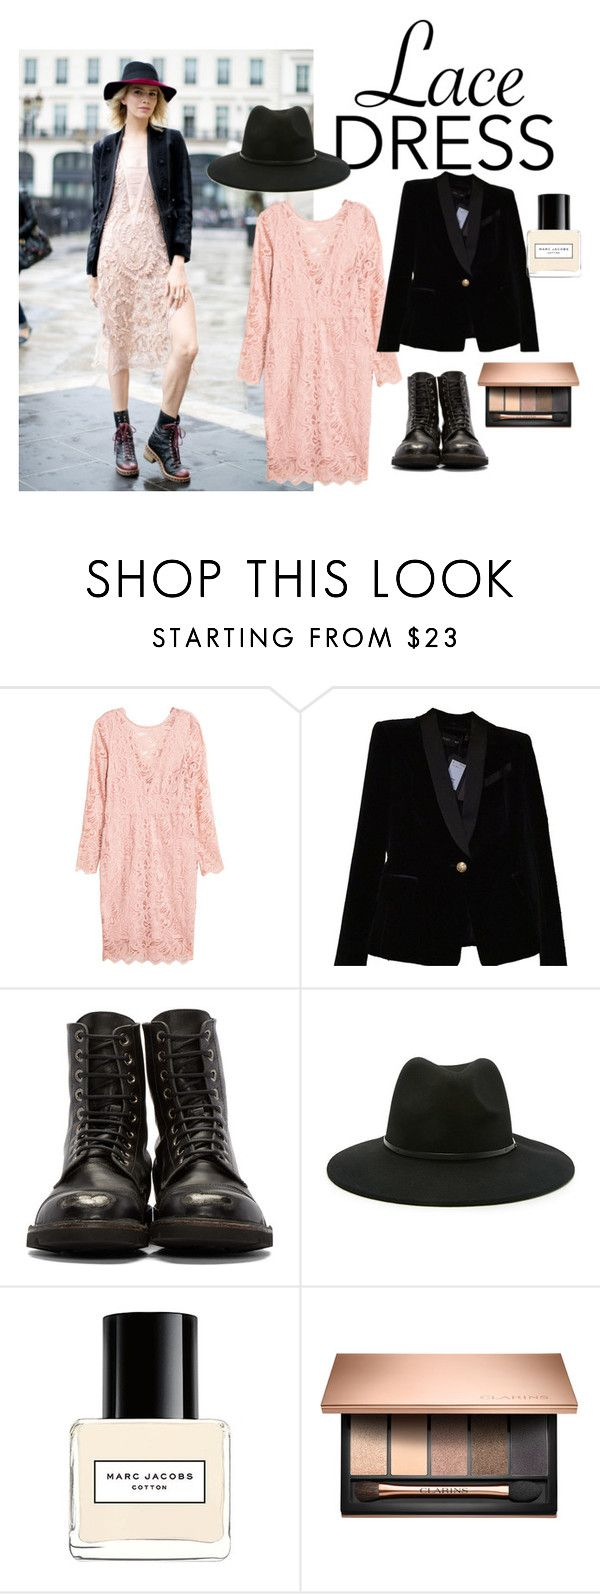 """""""lace dress"""" by redhead36 ❤ liked on Polyvore featuring Balmain, Forever 21 and Marc Jacobs"""